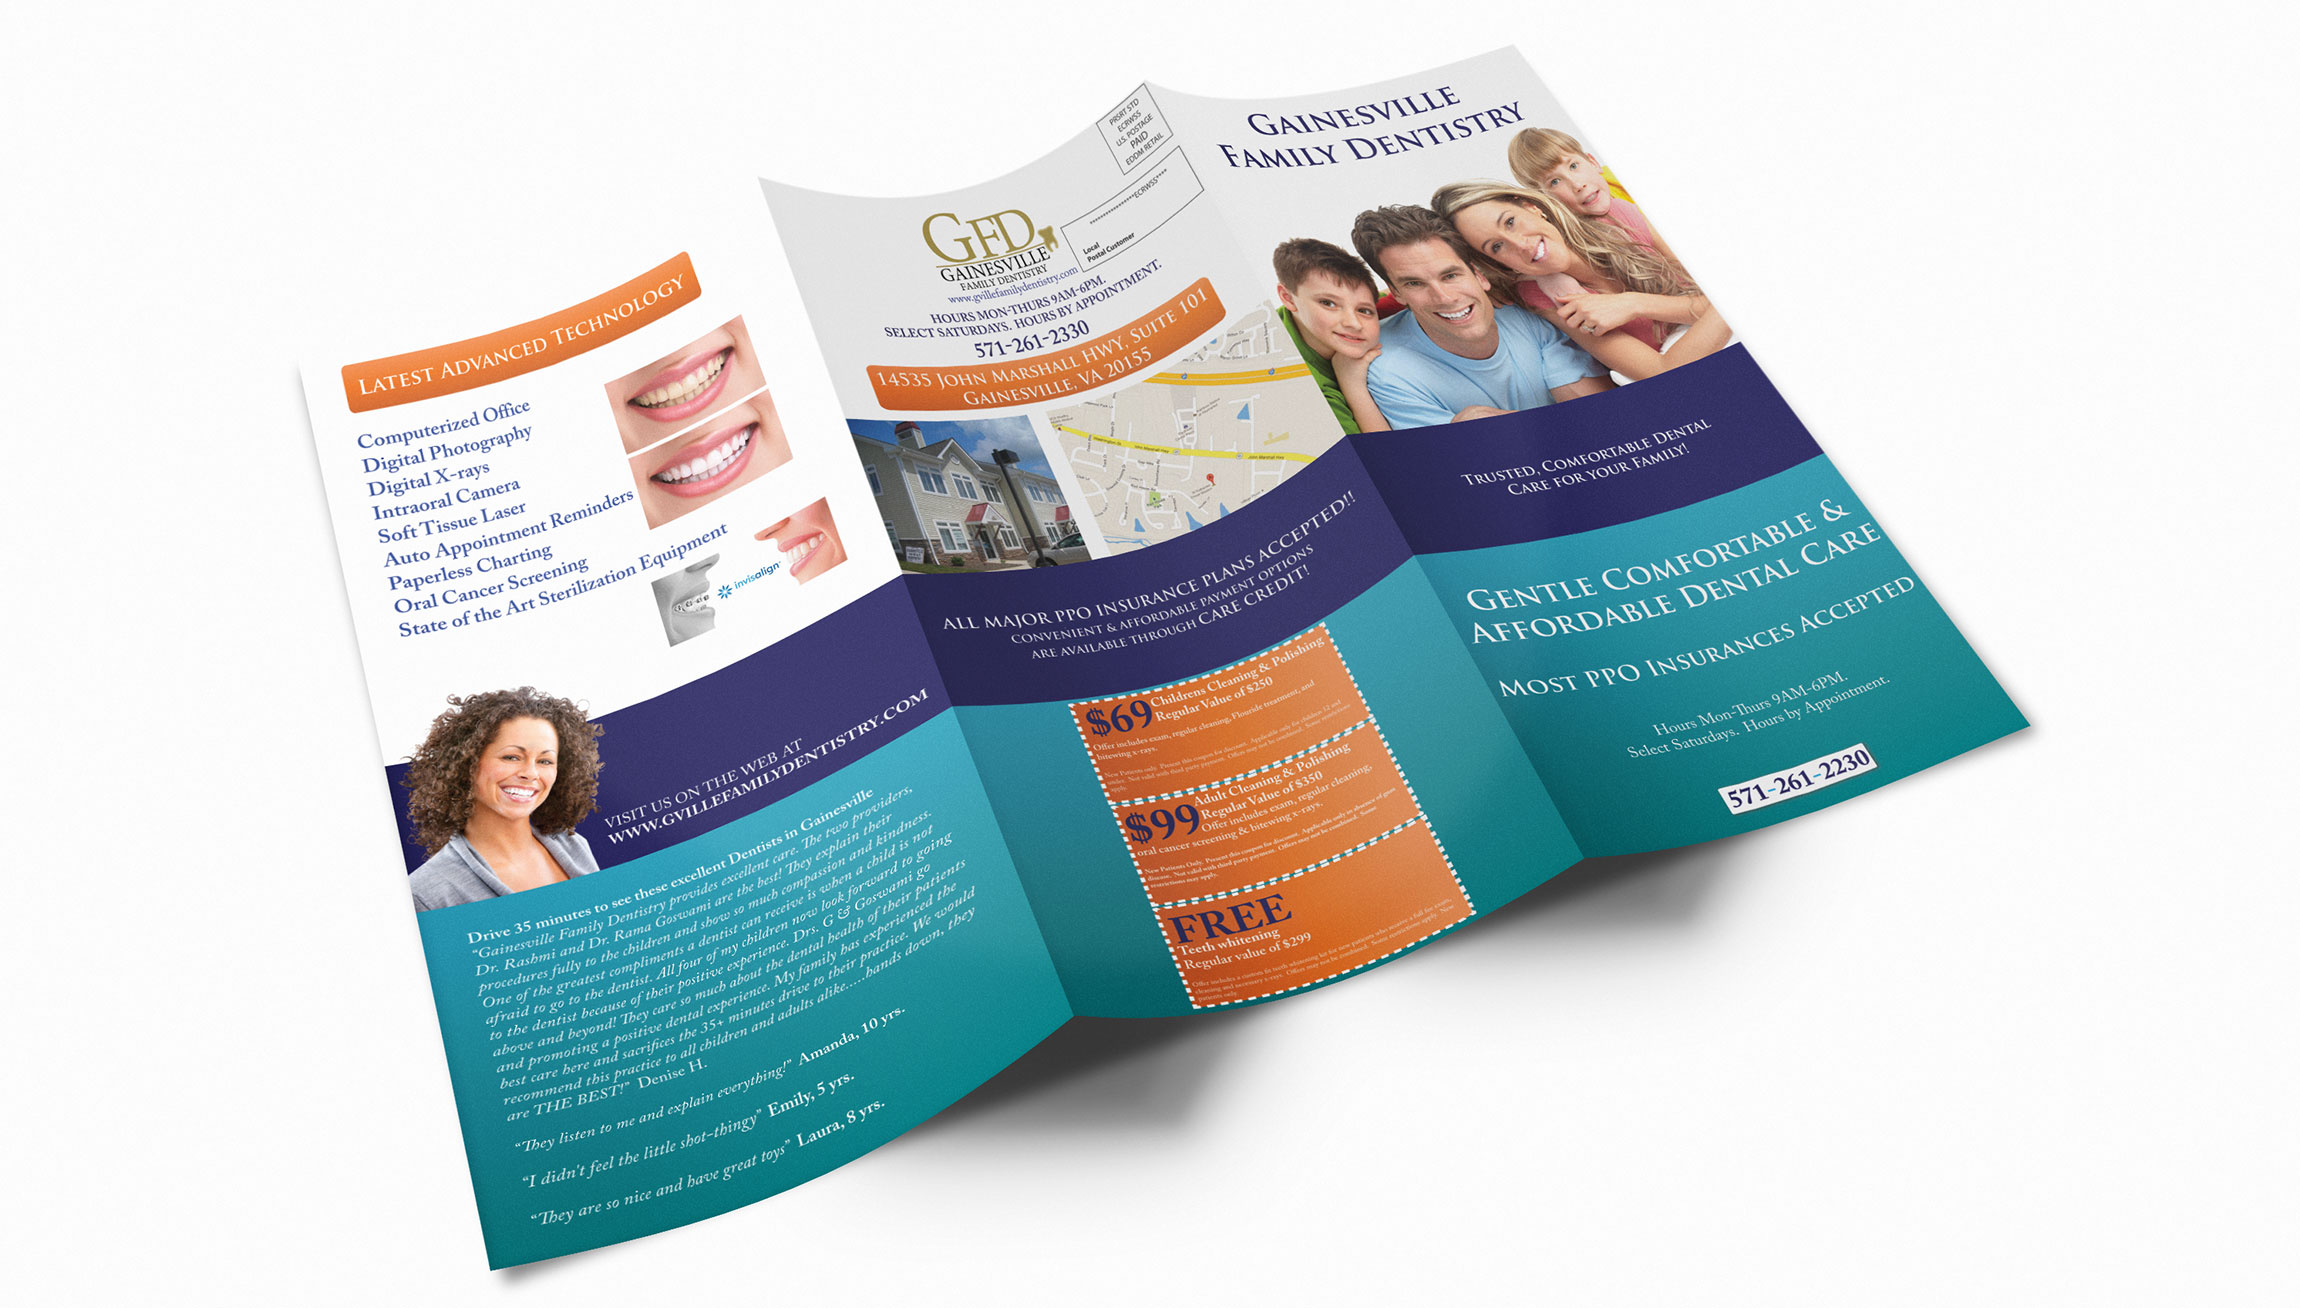 Printing and Design - Trifold double-sided flyer design mockup for Gainesville Family Dentistry